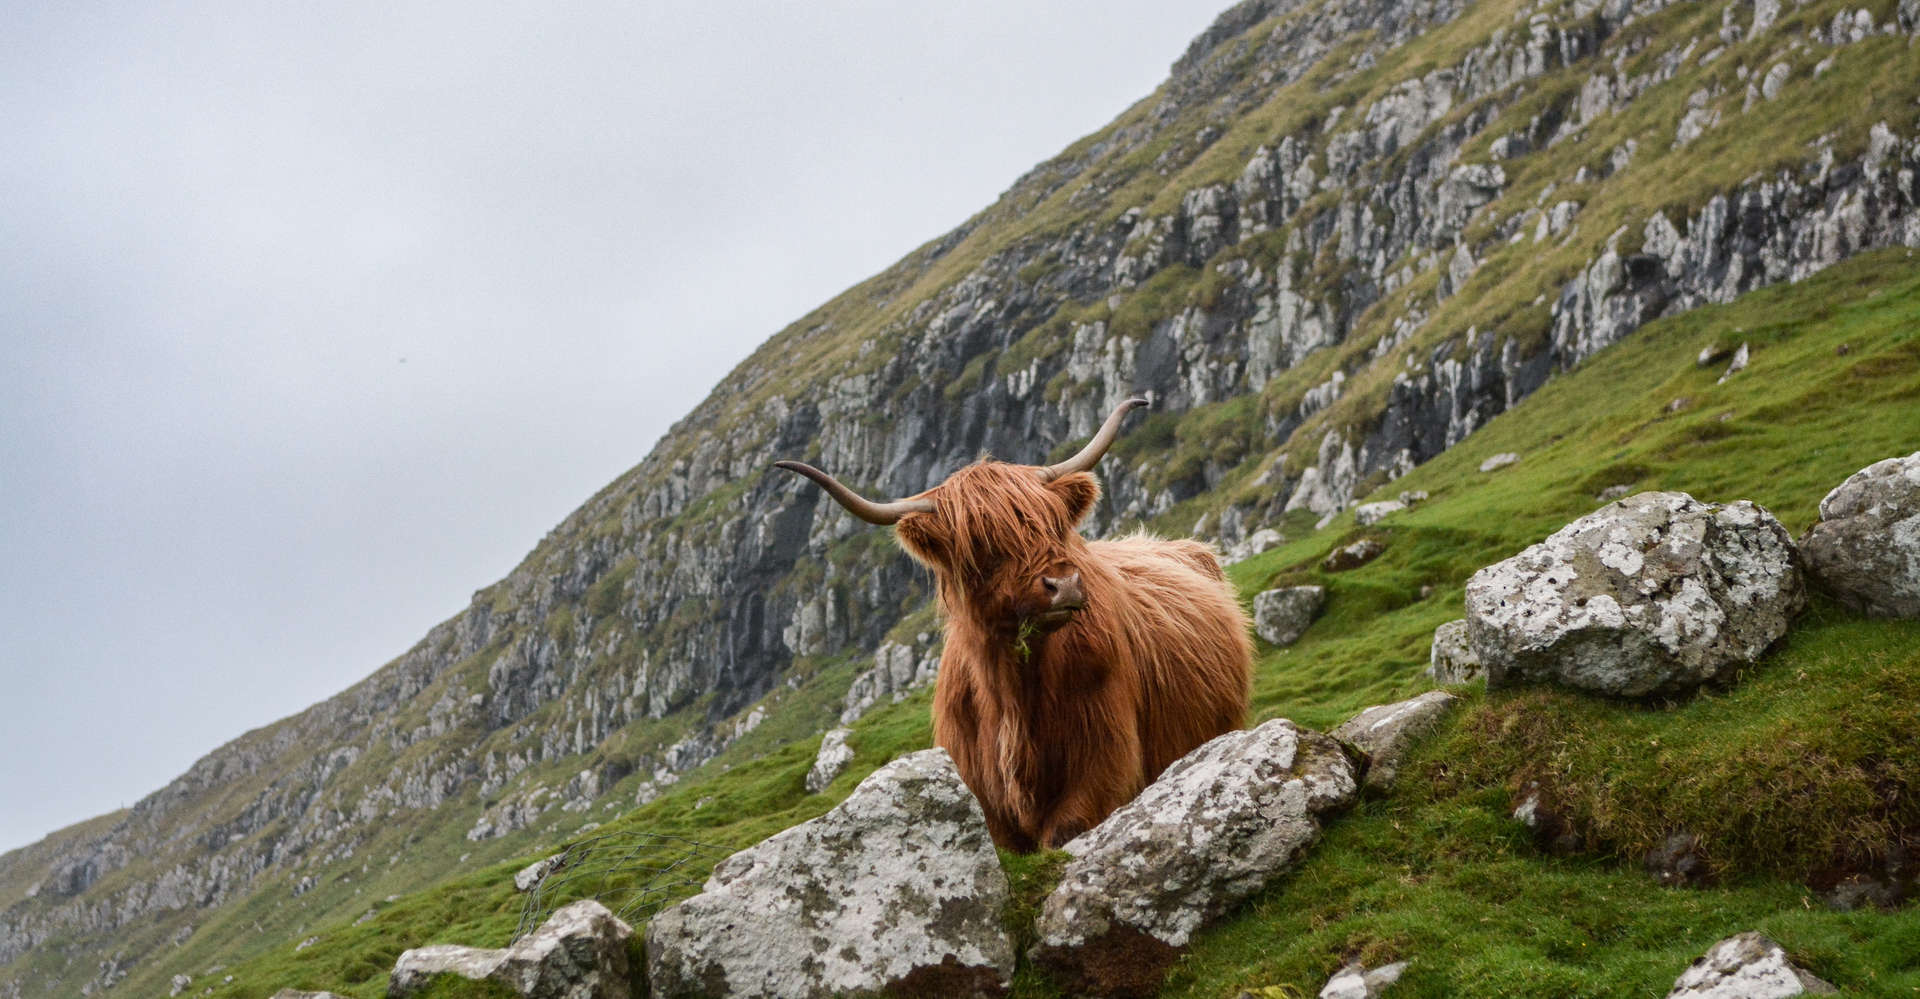 Hairy Coo or highland cow on hillside with sky and mountains